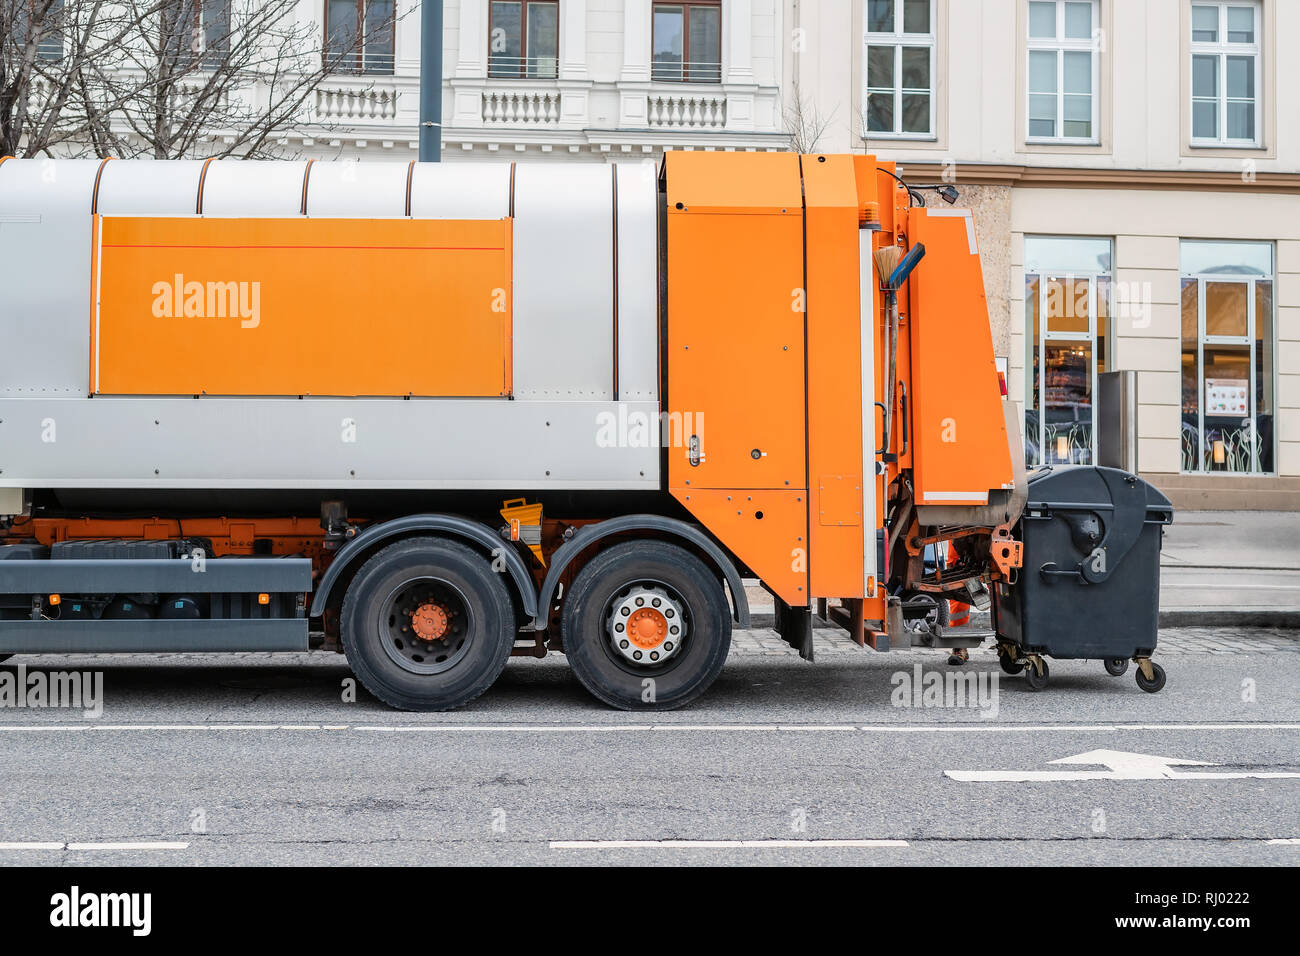 Garbage disposal lorry at city street. Waste dump truck on town road. Municipal and urban services. Waste management, disposal and recycling. Mock-up Stock Photo